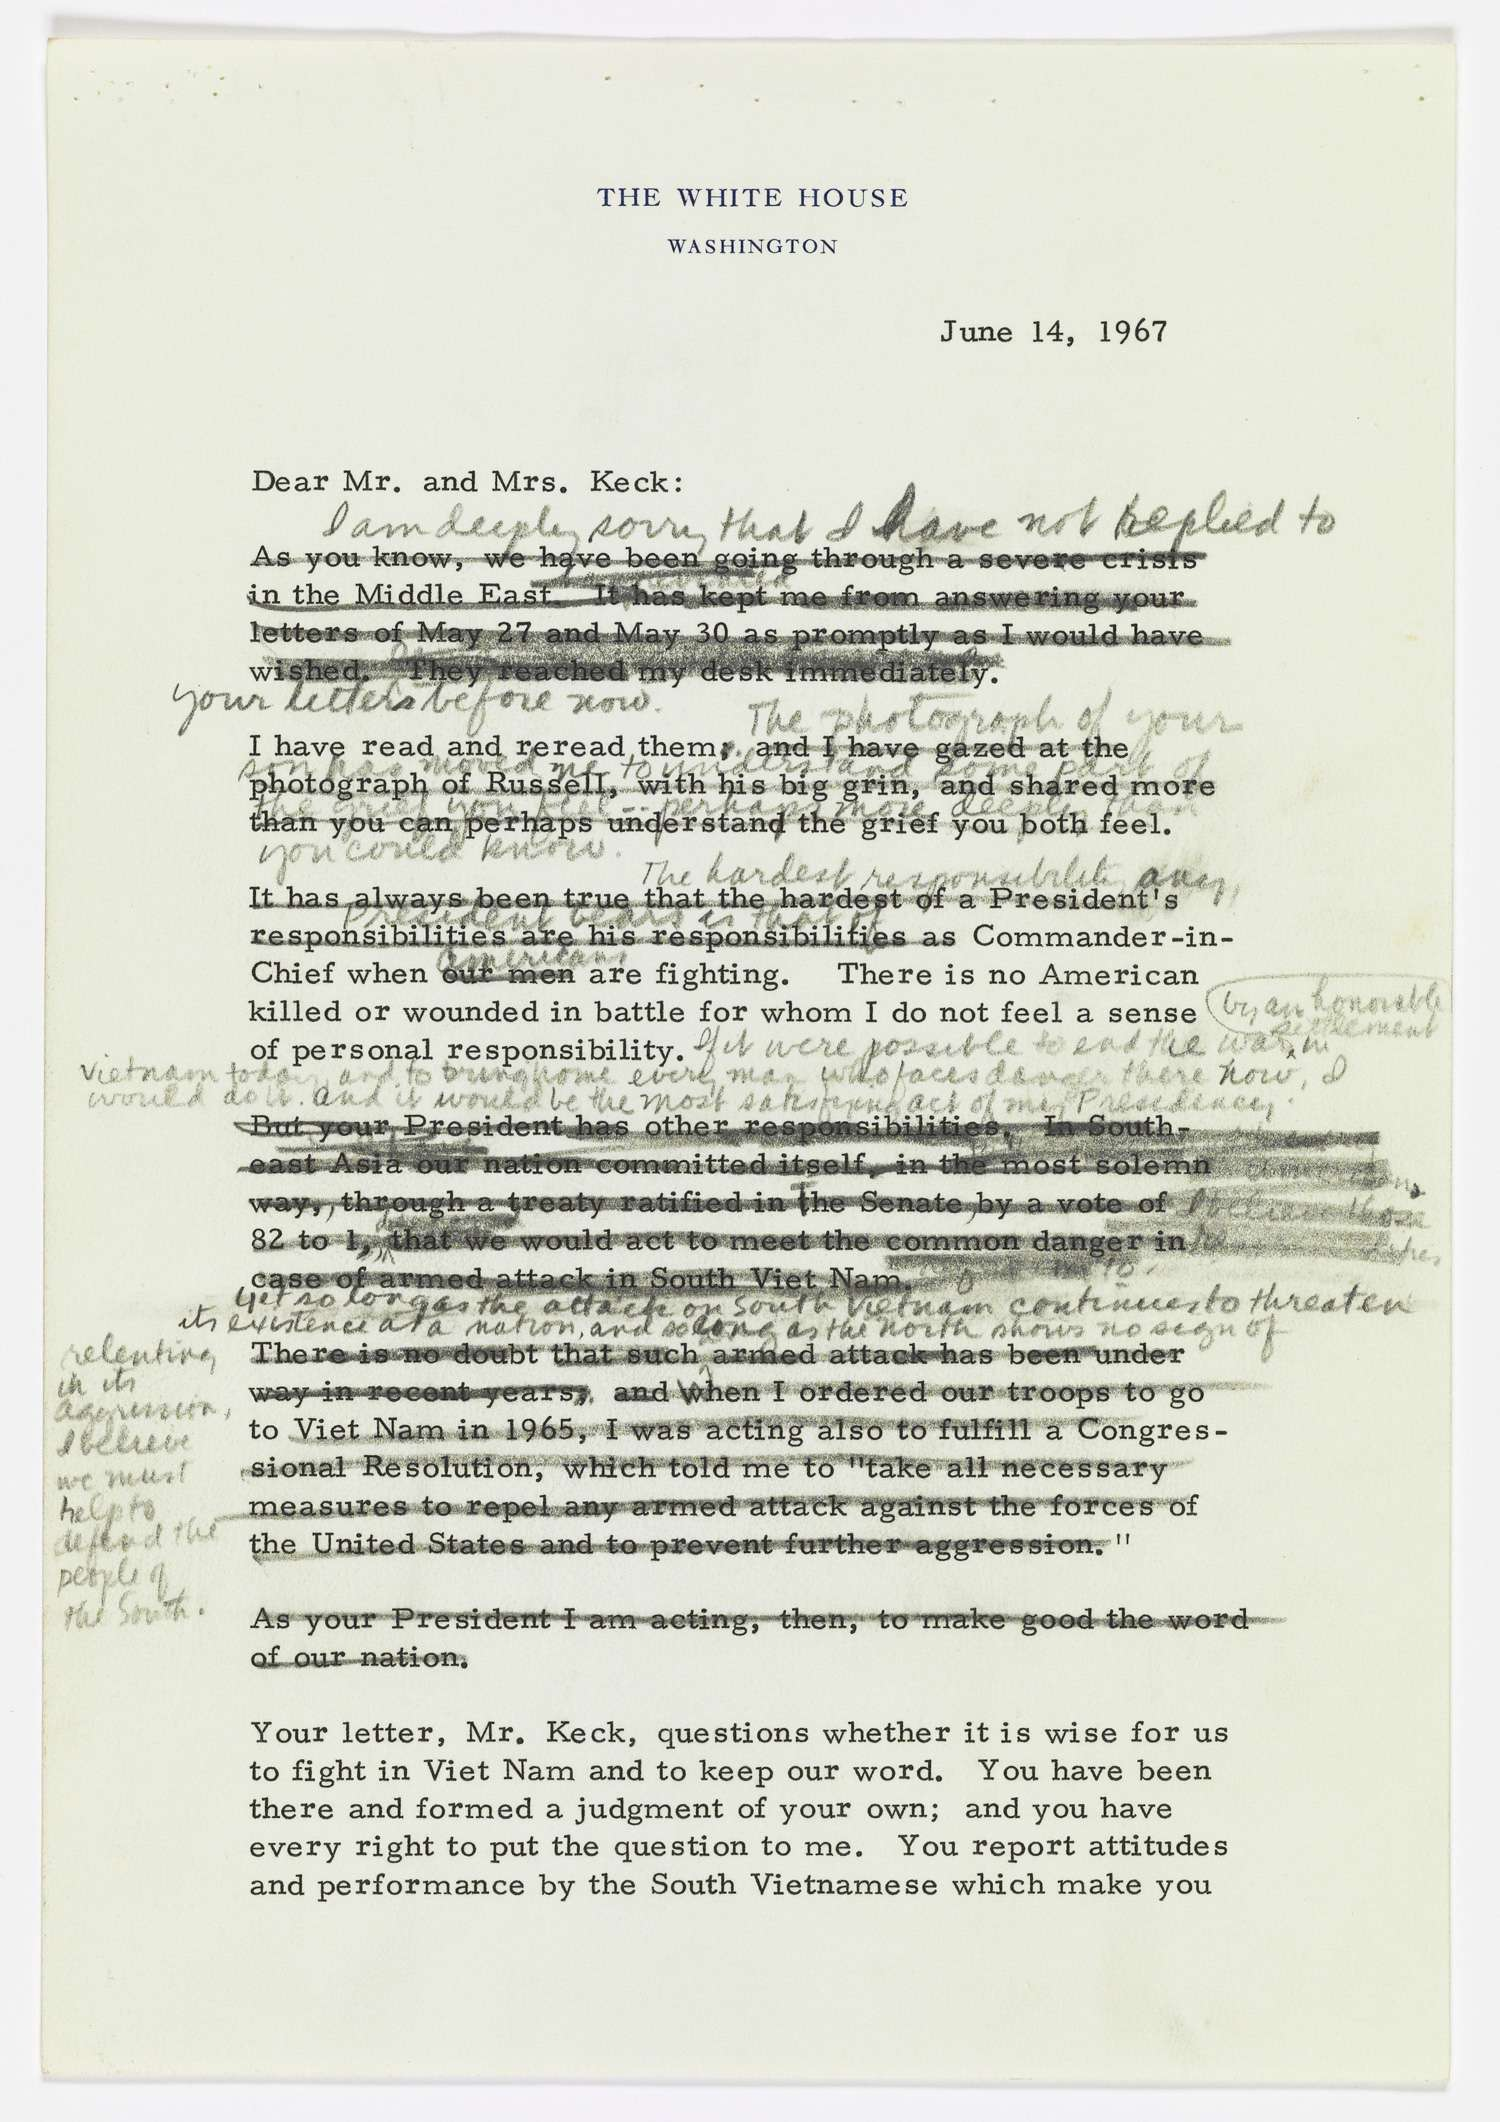 The parents of Marine Cpl. Russell Keck sent long letters to President Lyndon Johnson expressing anger and grief at losing their son. His draft reply, with layers of revised and rejected phrases, shows his struggle to respond. (National Archives/LBJ Library)